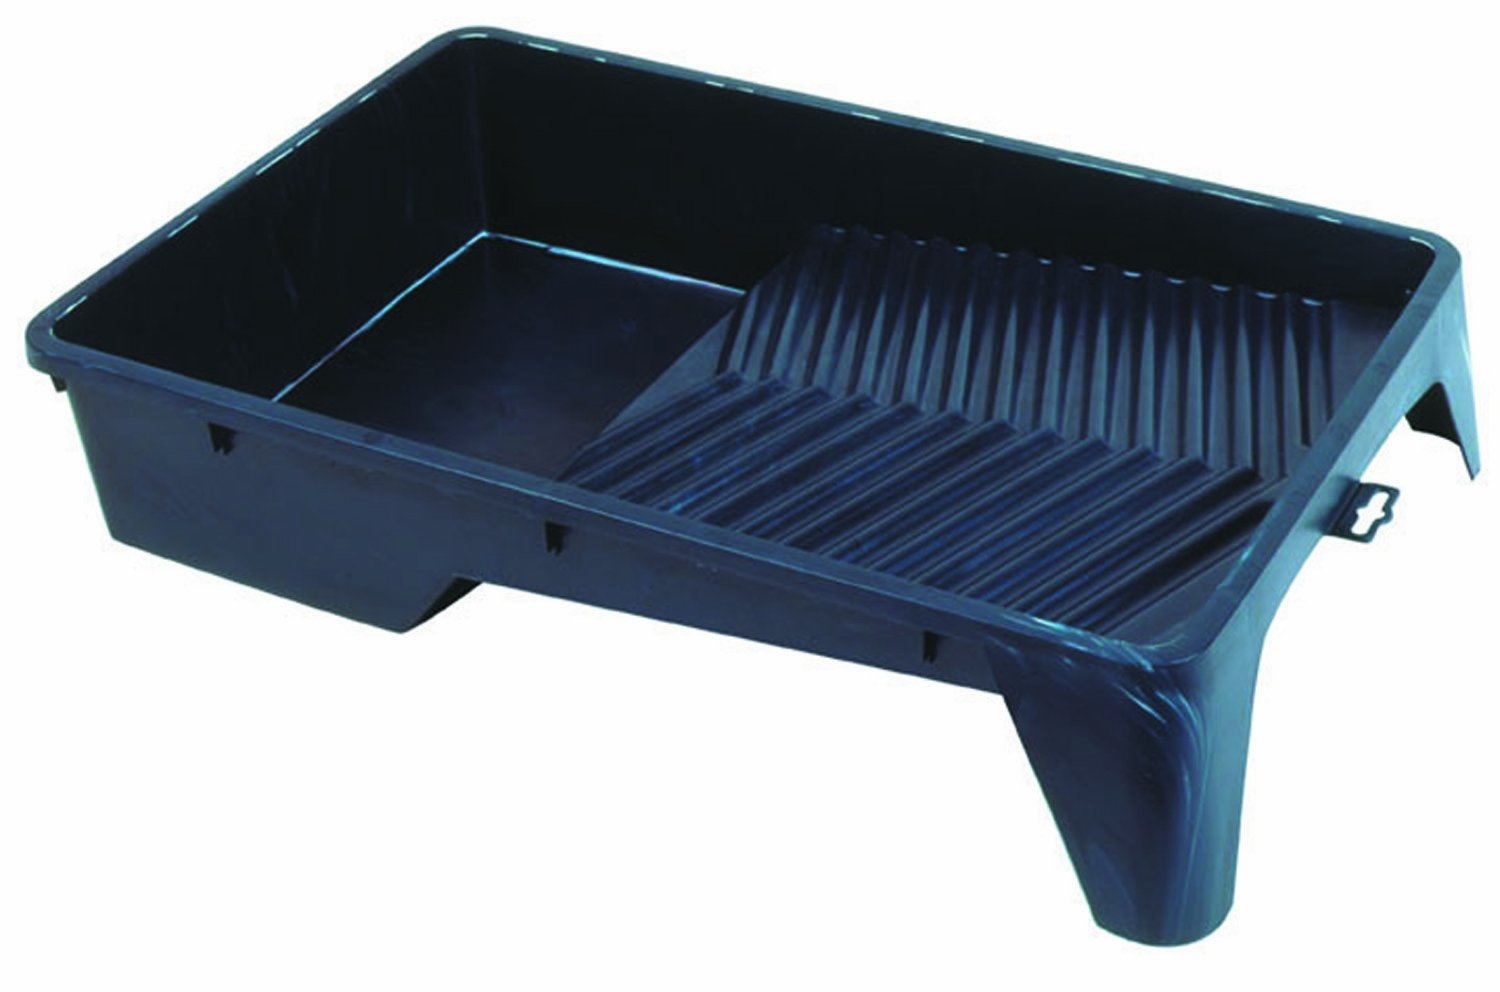 Encore 45 XL X-Treme Deep Well Paint Roller Tray, 5 Qt Capacity, Plastic, Black by Encore